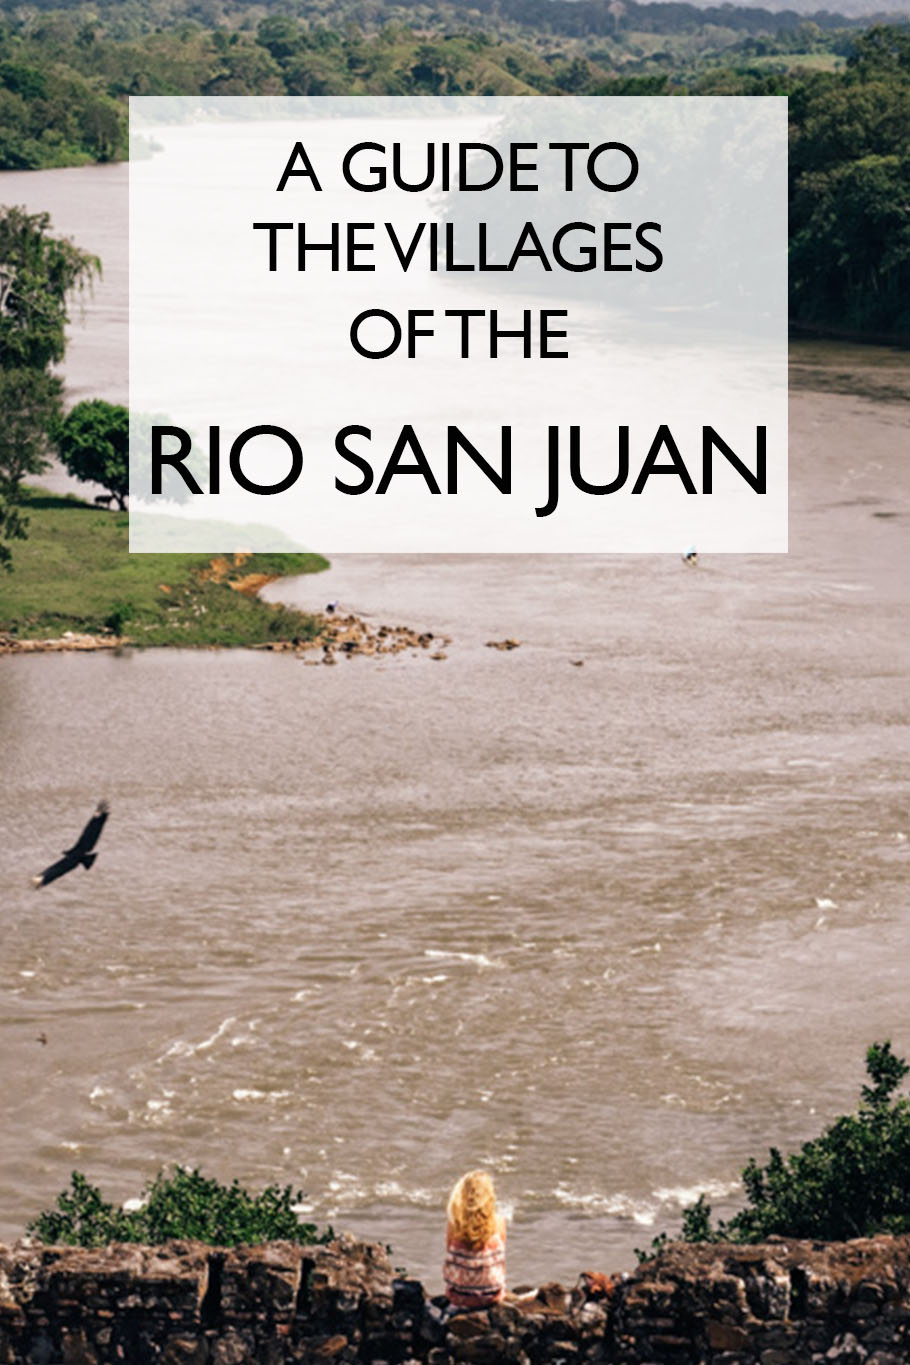 A Guide to the Villages of the Rio San Juan, Nicaragua